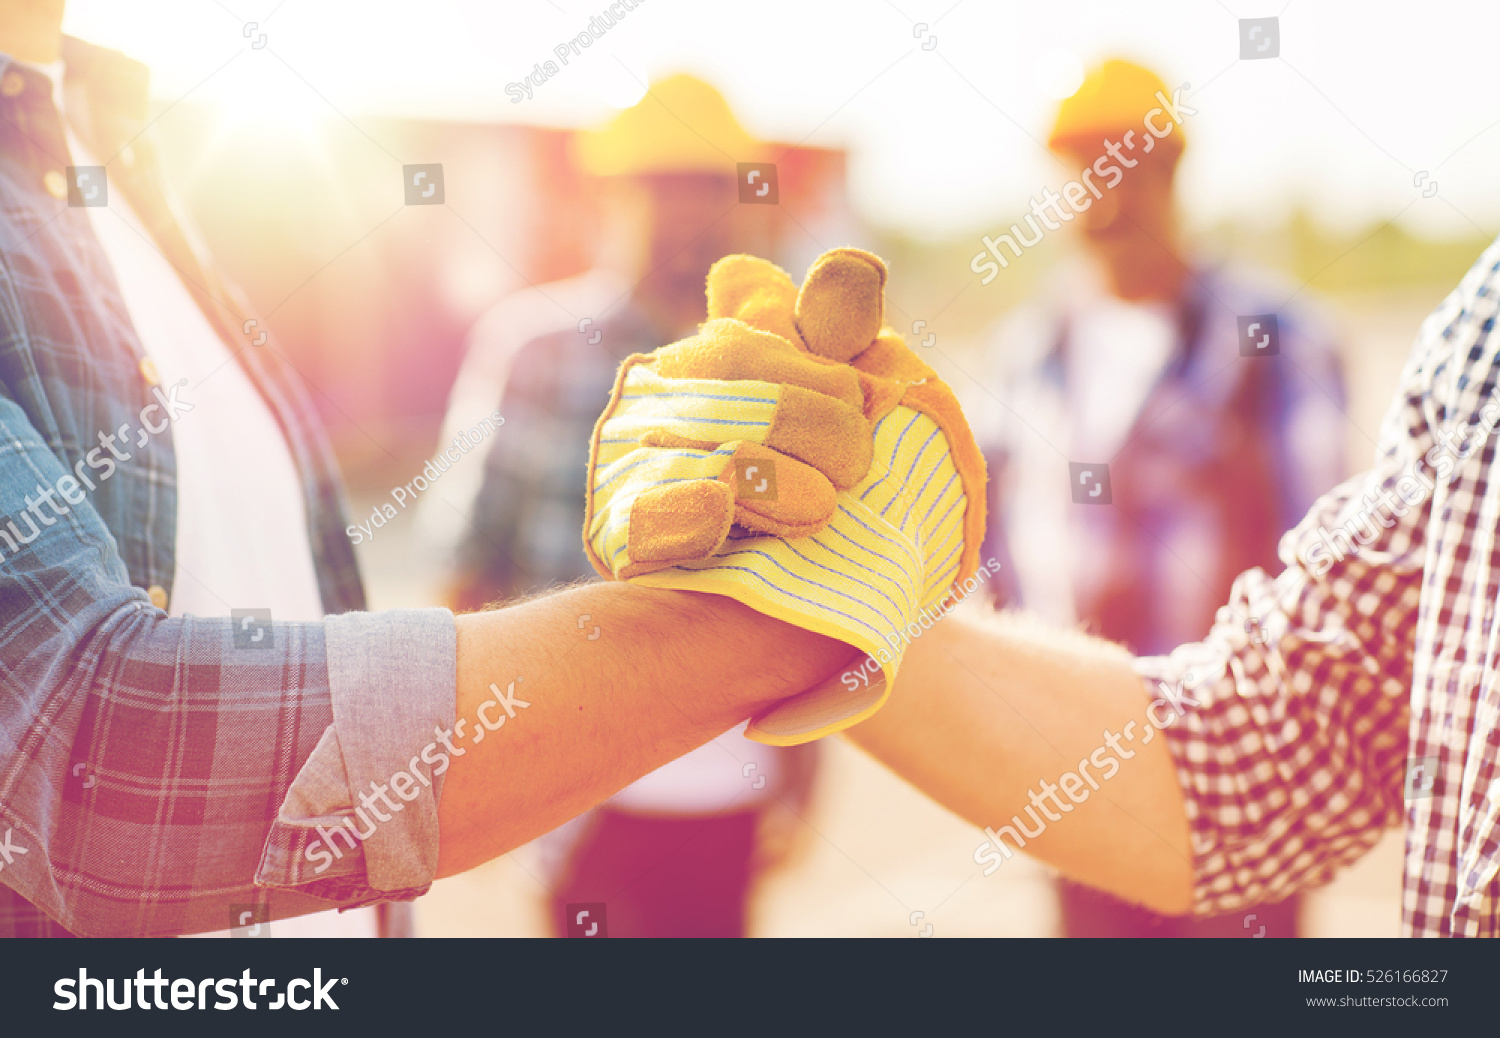 building, teamwork, partnership, gesture and people concept - close up of builders hands in gloves greeting each other with handshake on construction site #526166827